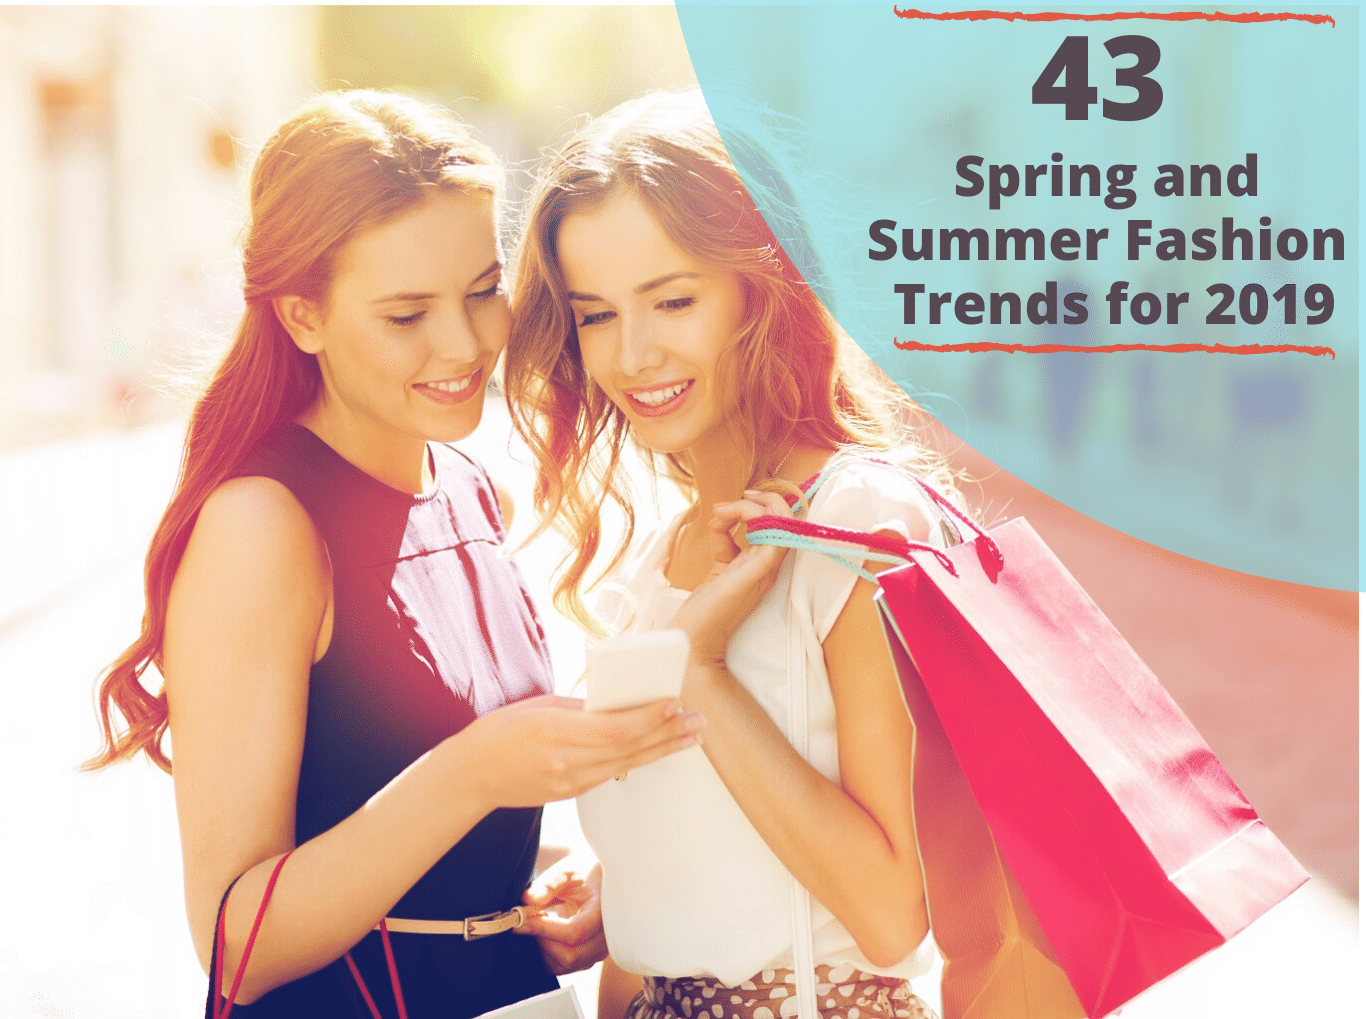 Spring and Summer Fashion Trends